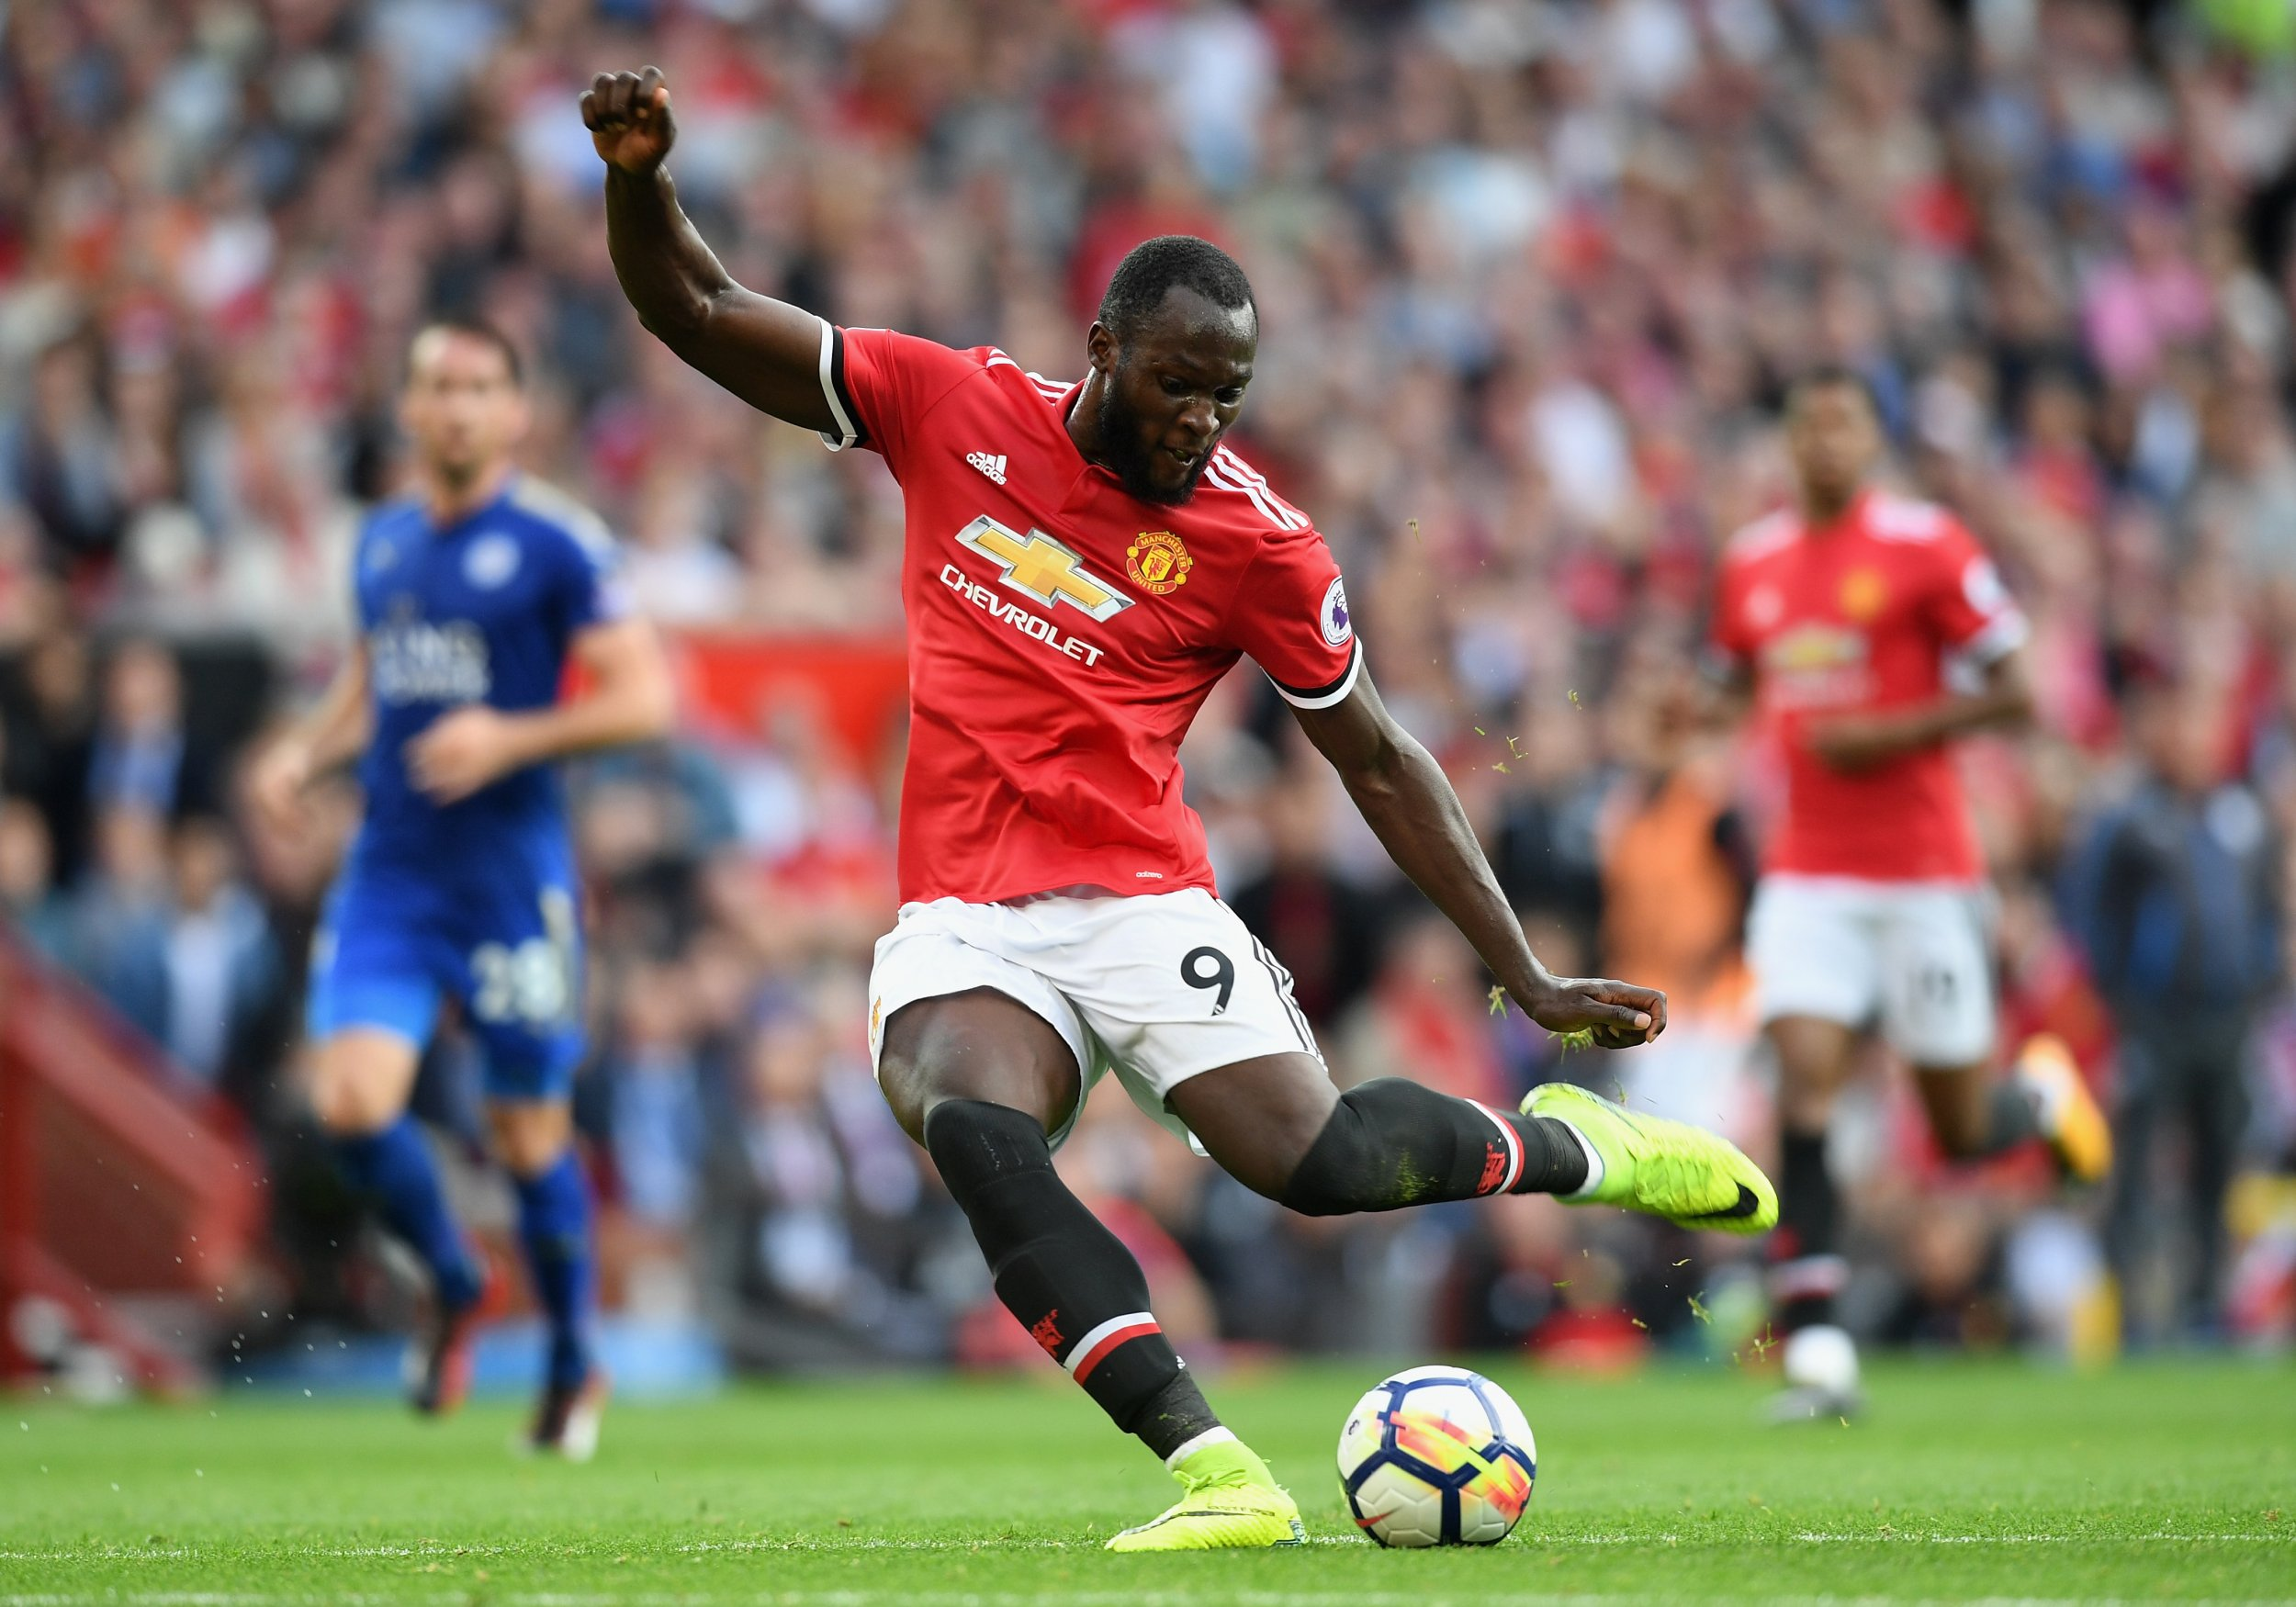 Romelu Lukaku of Manchester United in Manchester, England, August 26.